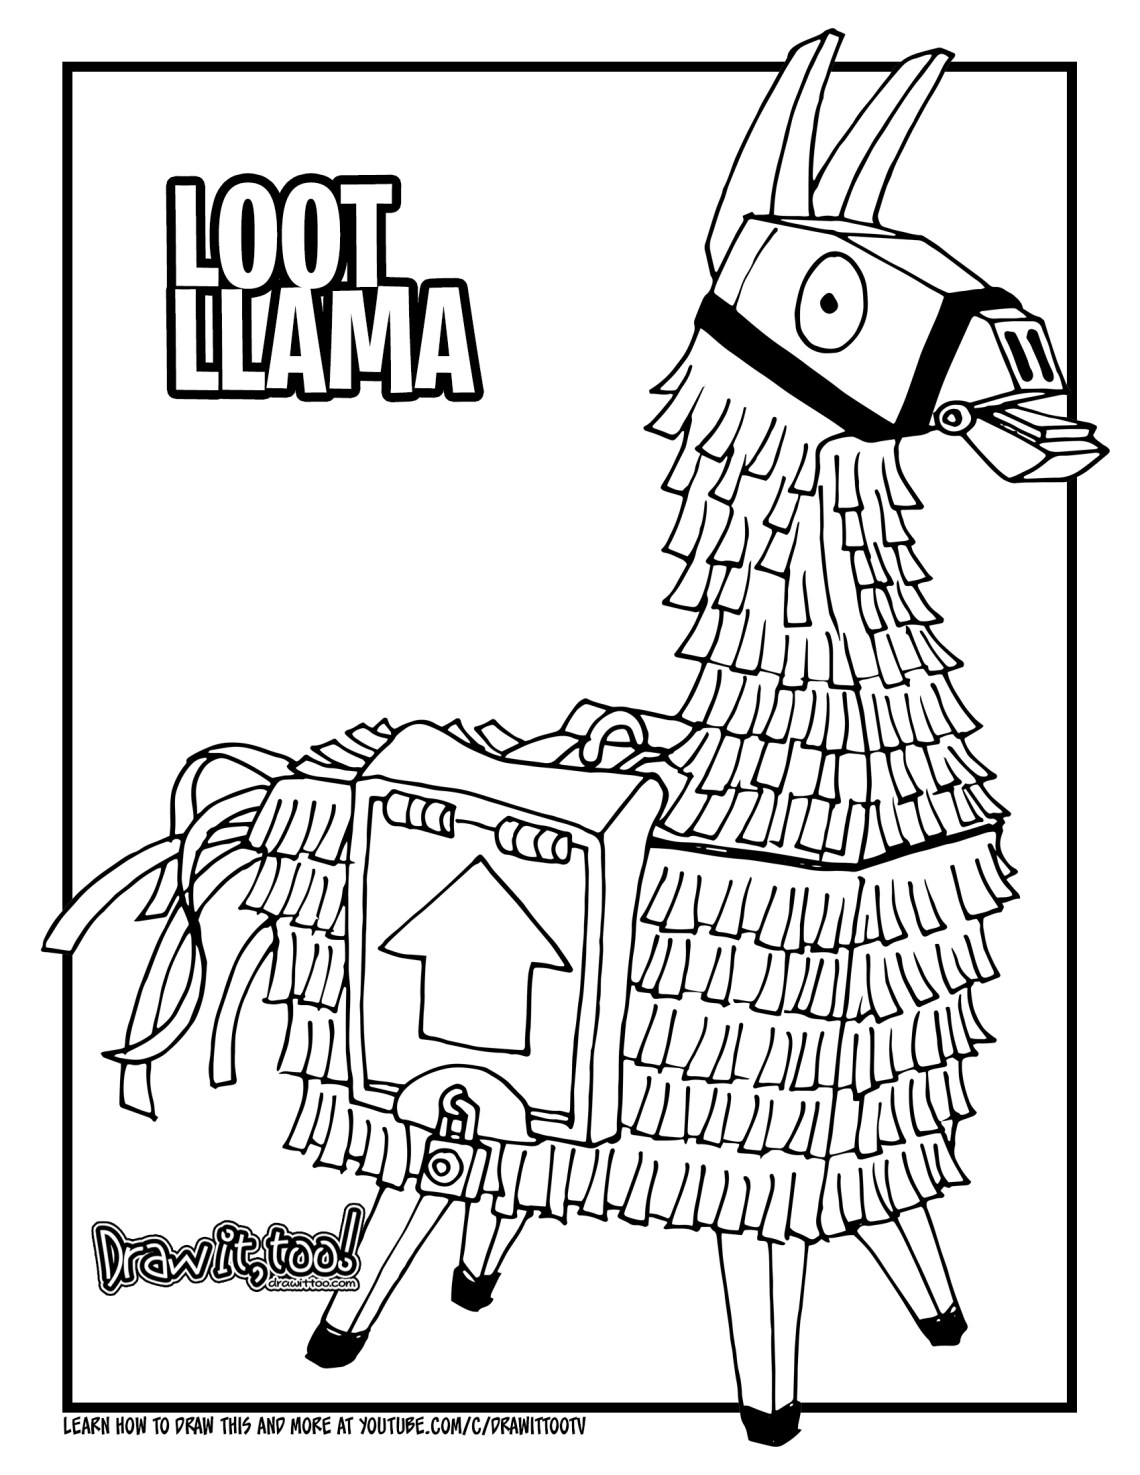 download the loot llama coloring page here - fortnite llama pickaxe drawing